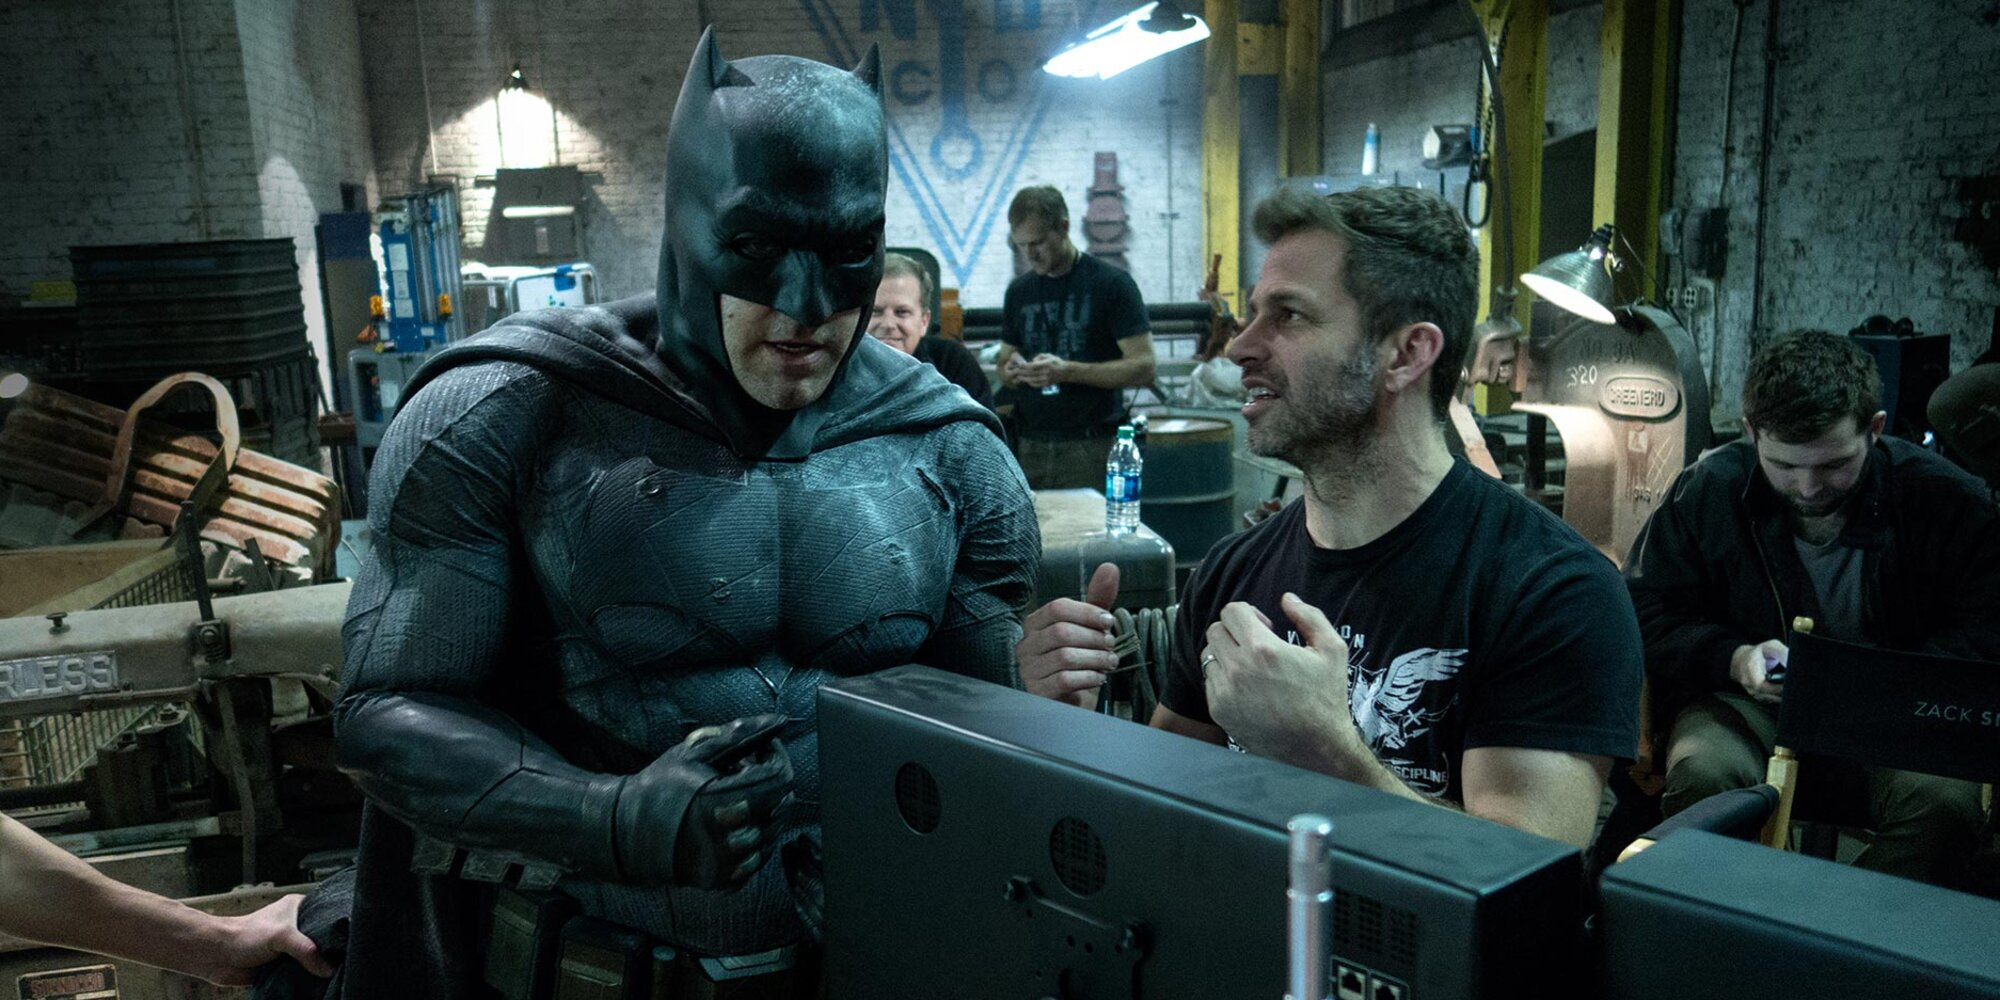 Zack Snyder weighs in on that vetoed oral sex scene between Batman and Catwoman (for some reason) - Entertainment Weekly News